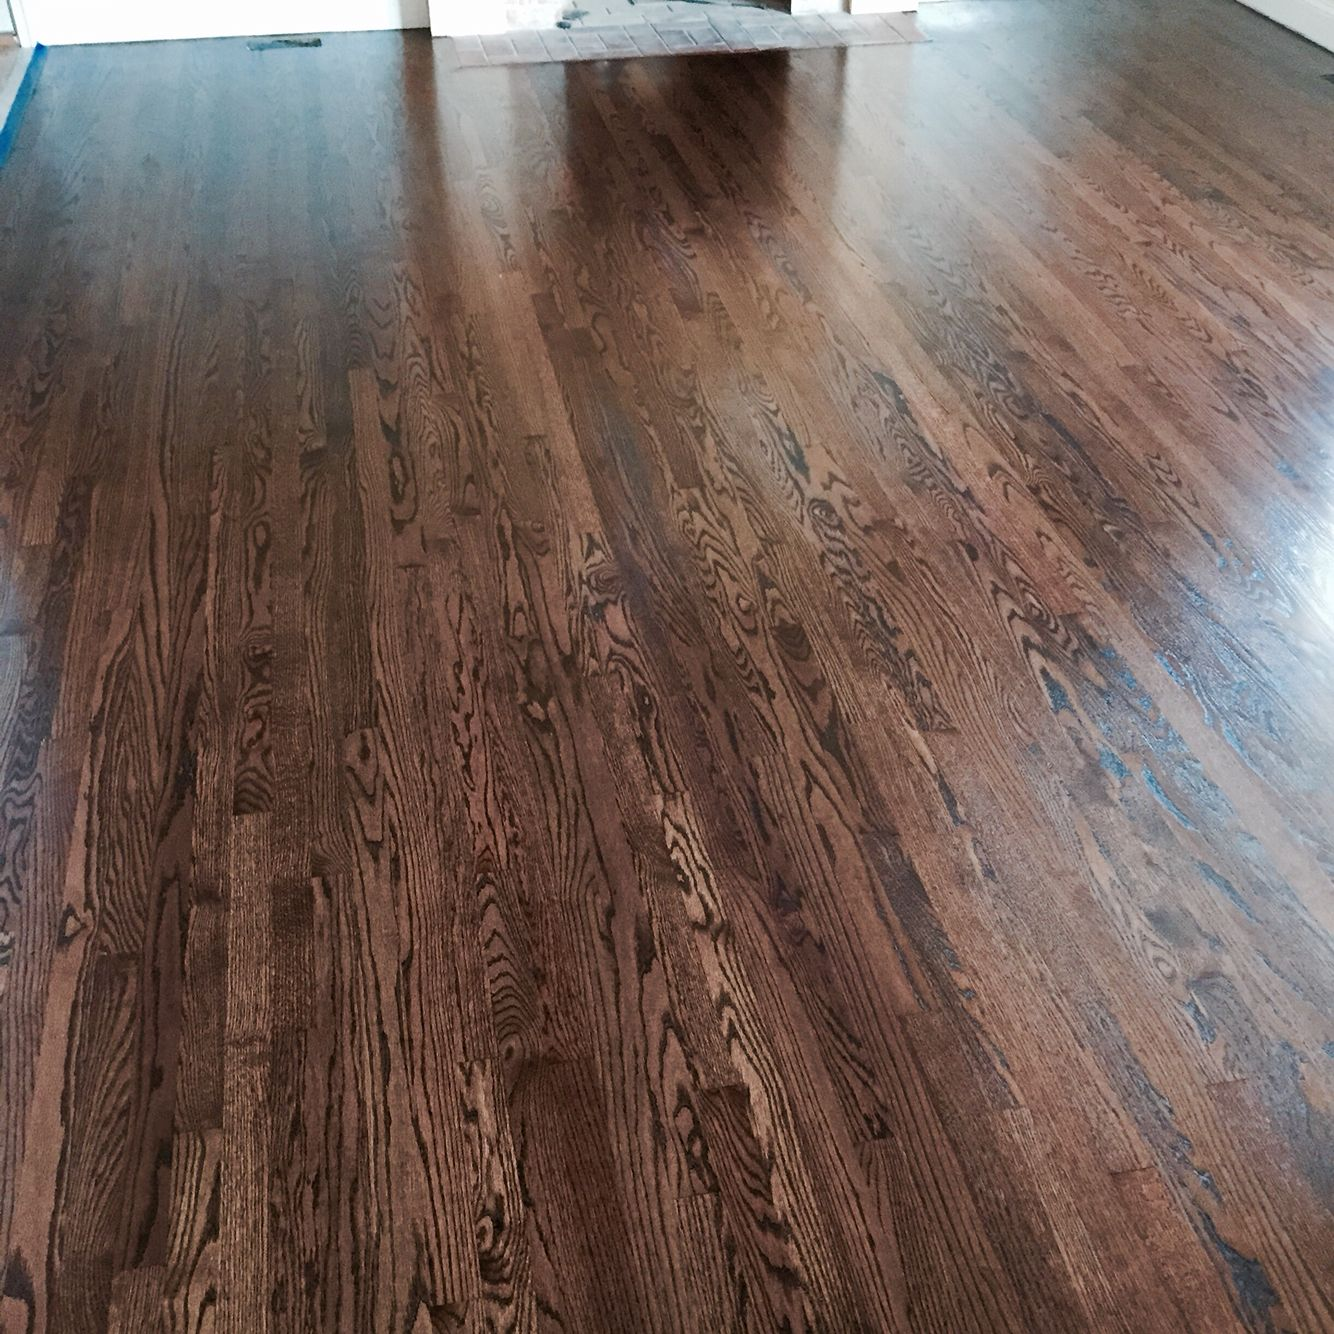 Refinished Red Oak With Antique Brown Stain And Finished Bona Mega Clear Hd Satin